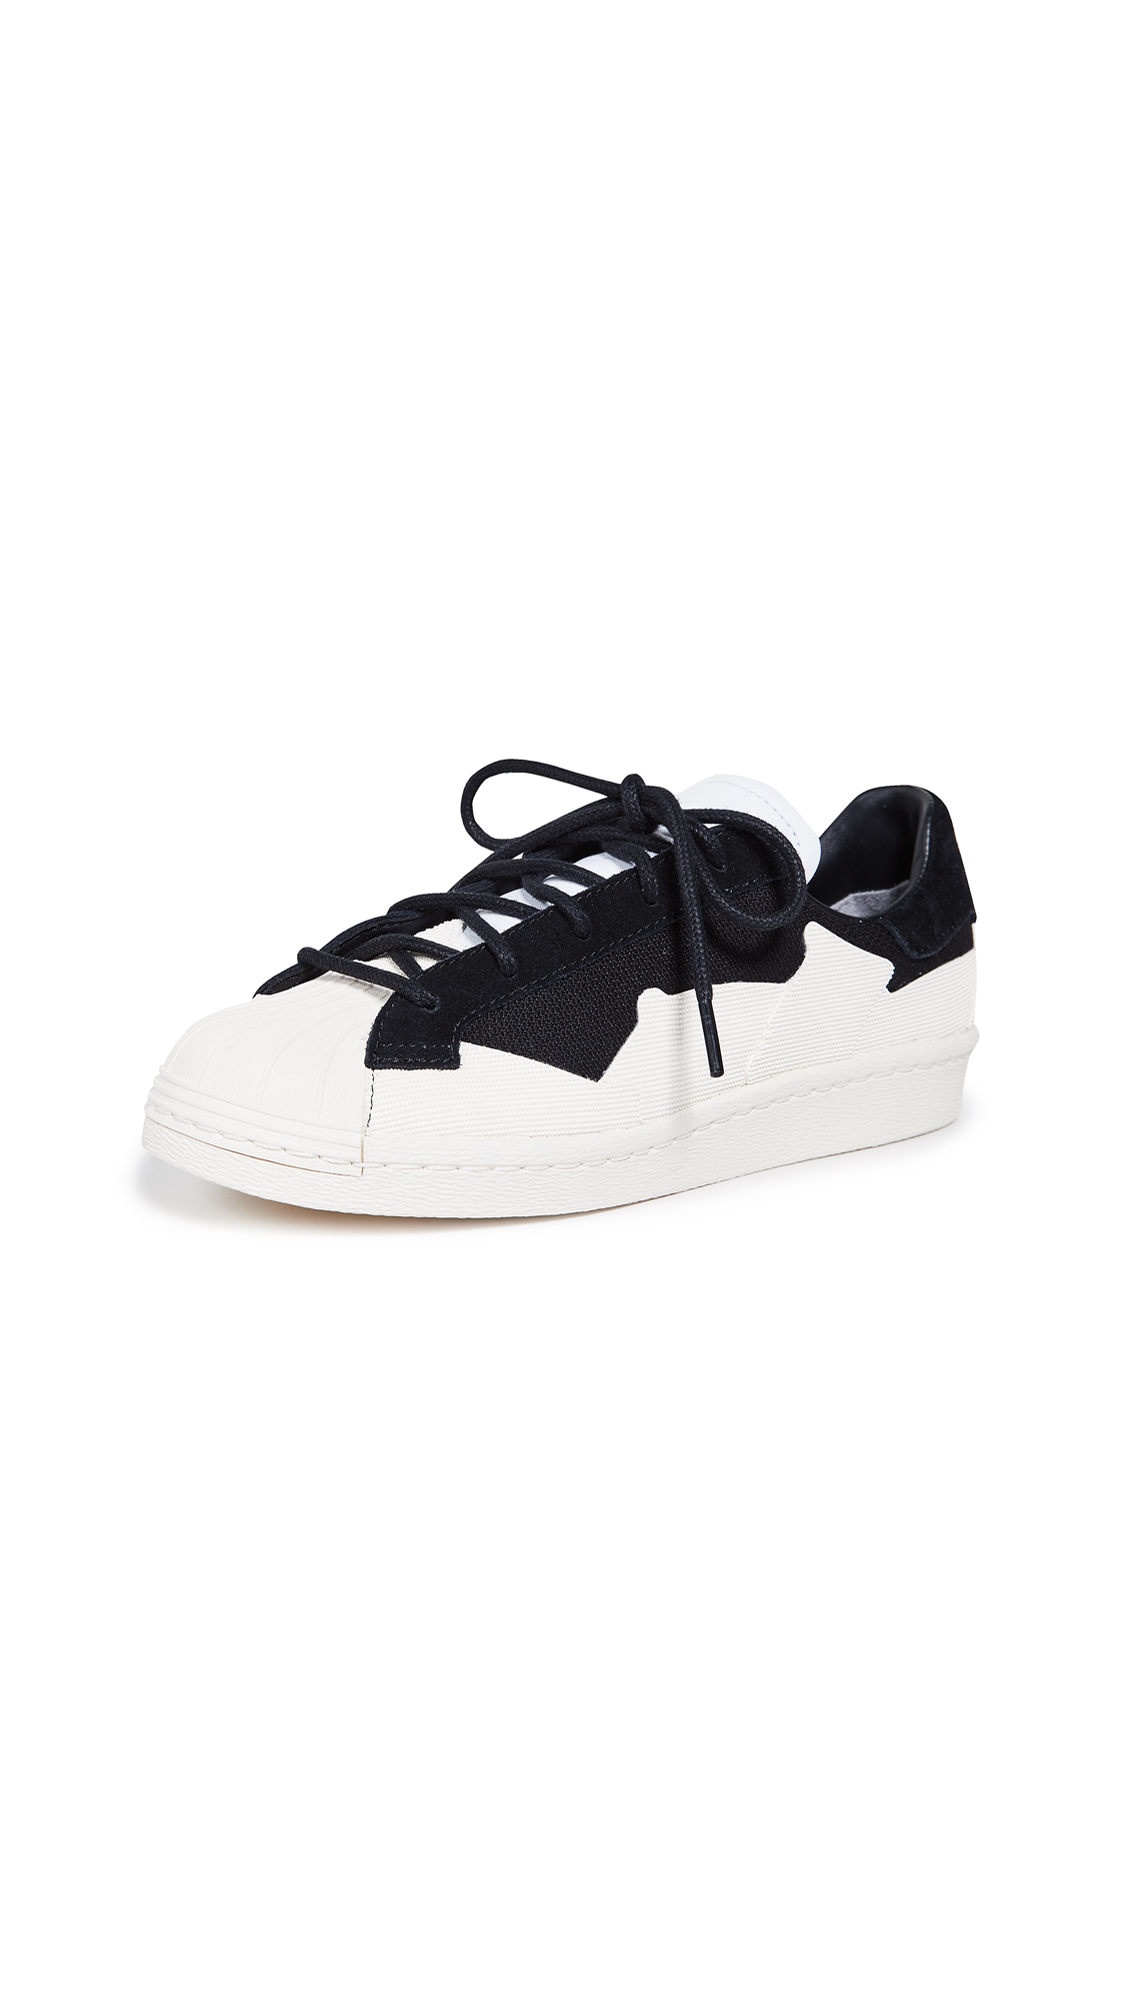 Y-3 Y-3 Super Takusan Sneakers - Core Black/Black/White